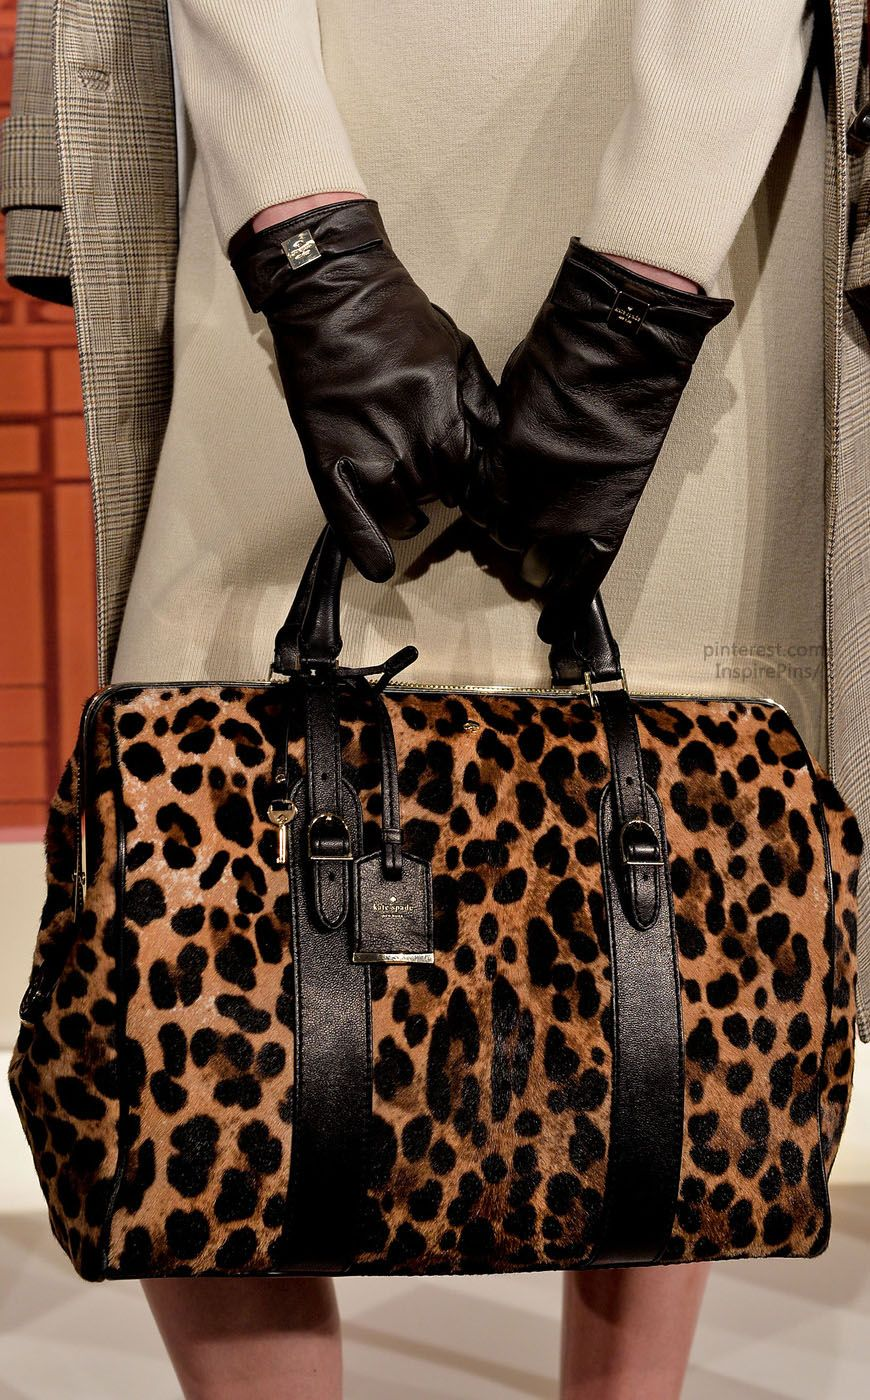 Kate Spade Fall 2014 Runway Pictures